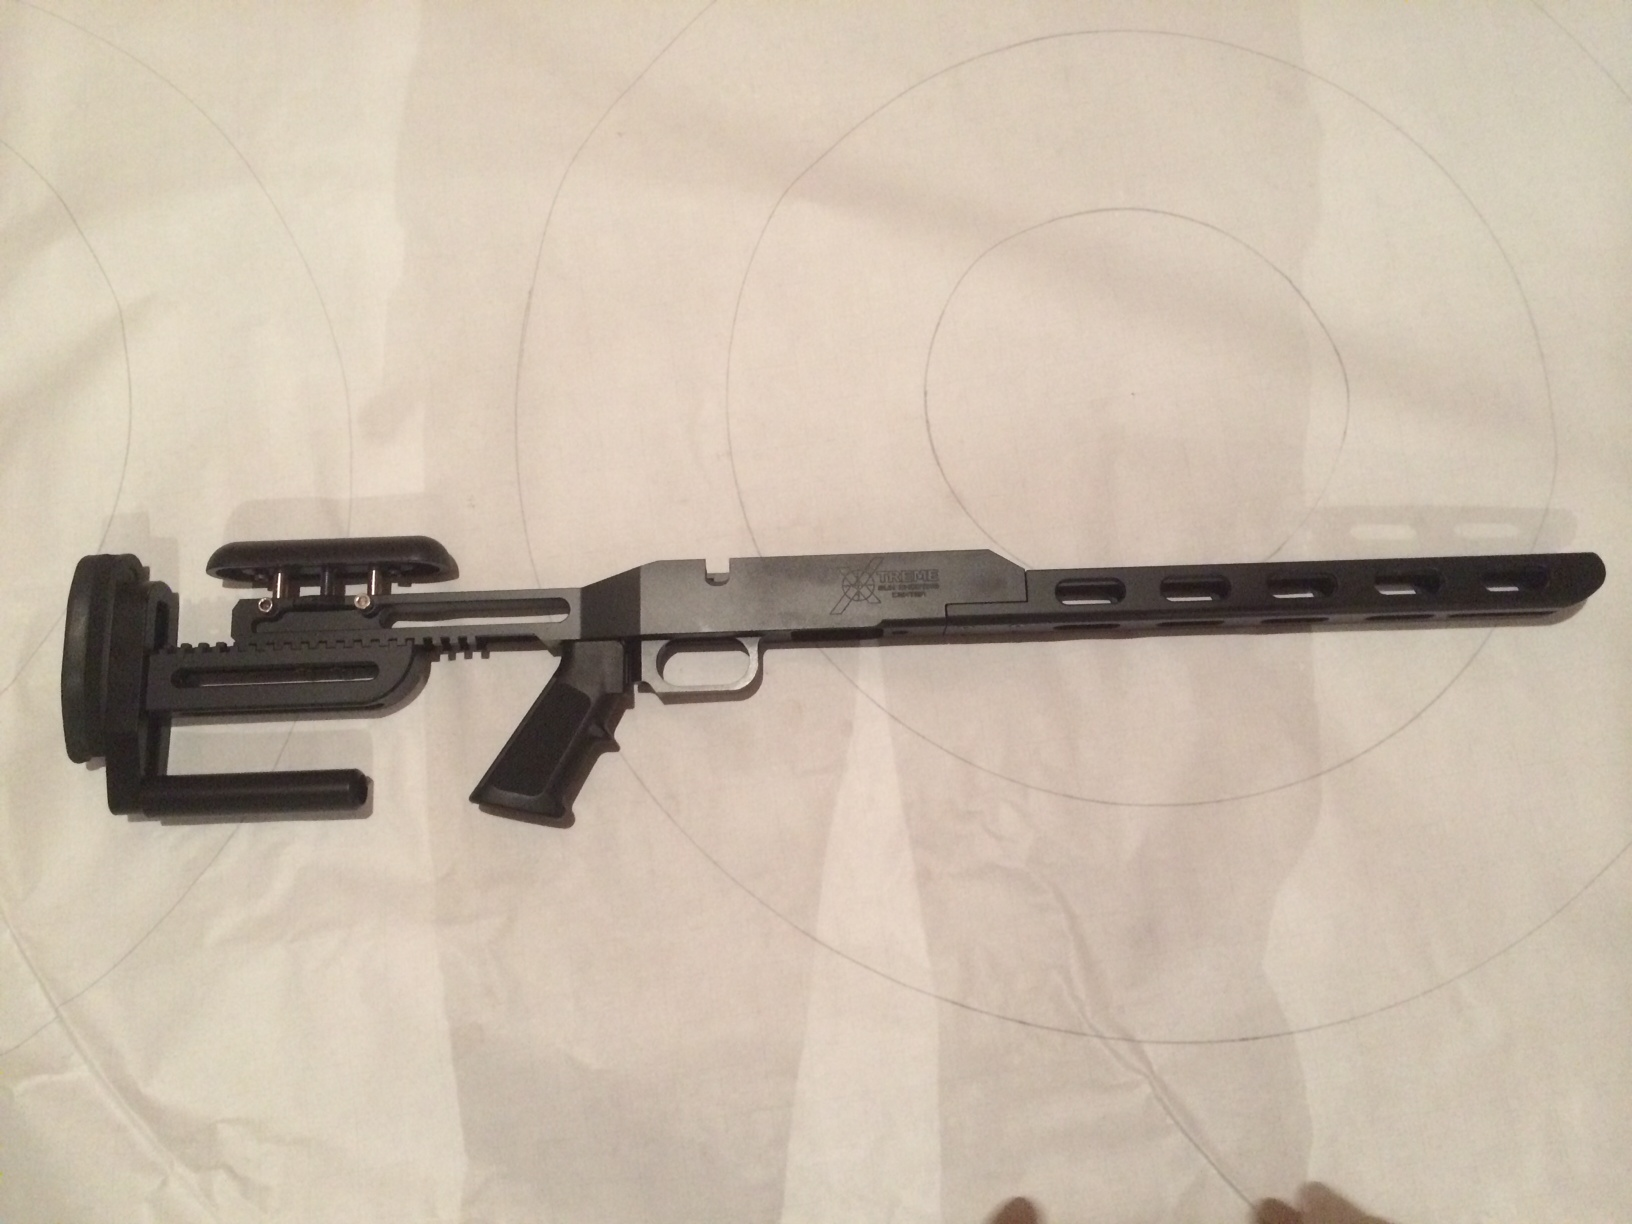 Xtreme Gun - Chassis, Borden Rimrock, Single Shot - Black